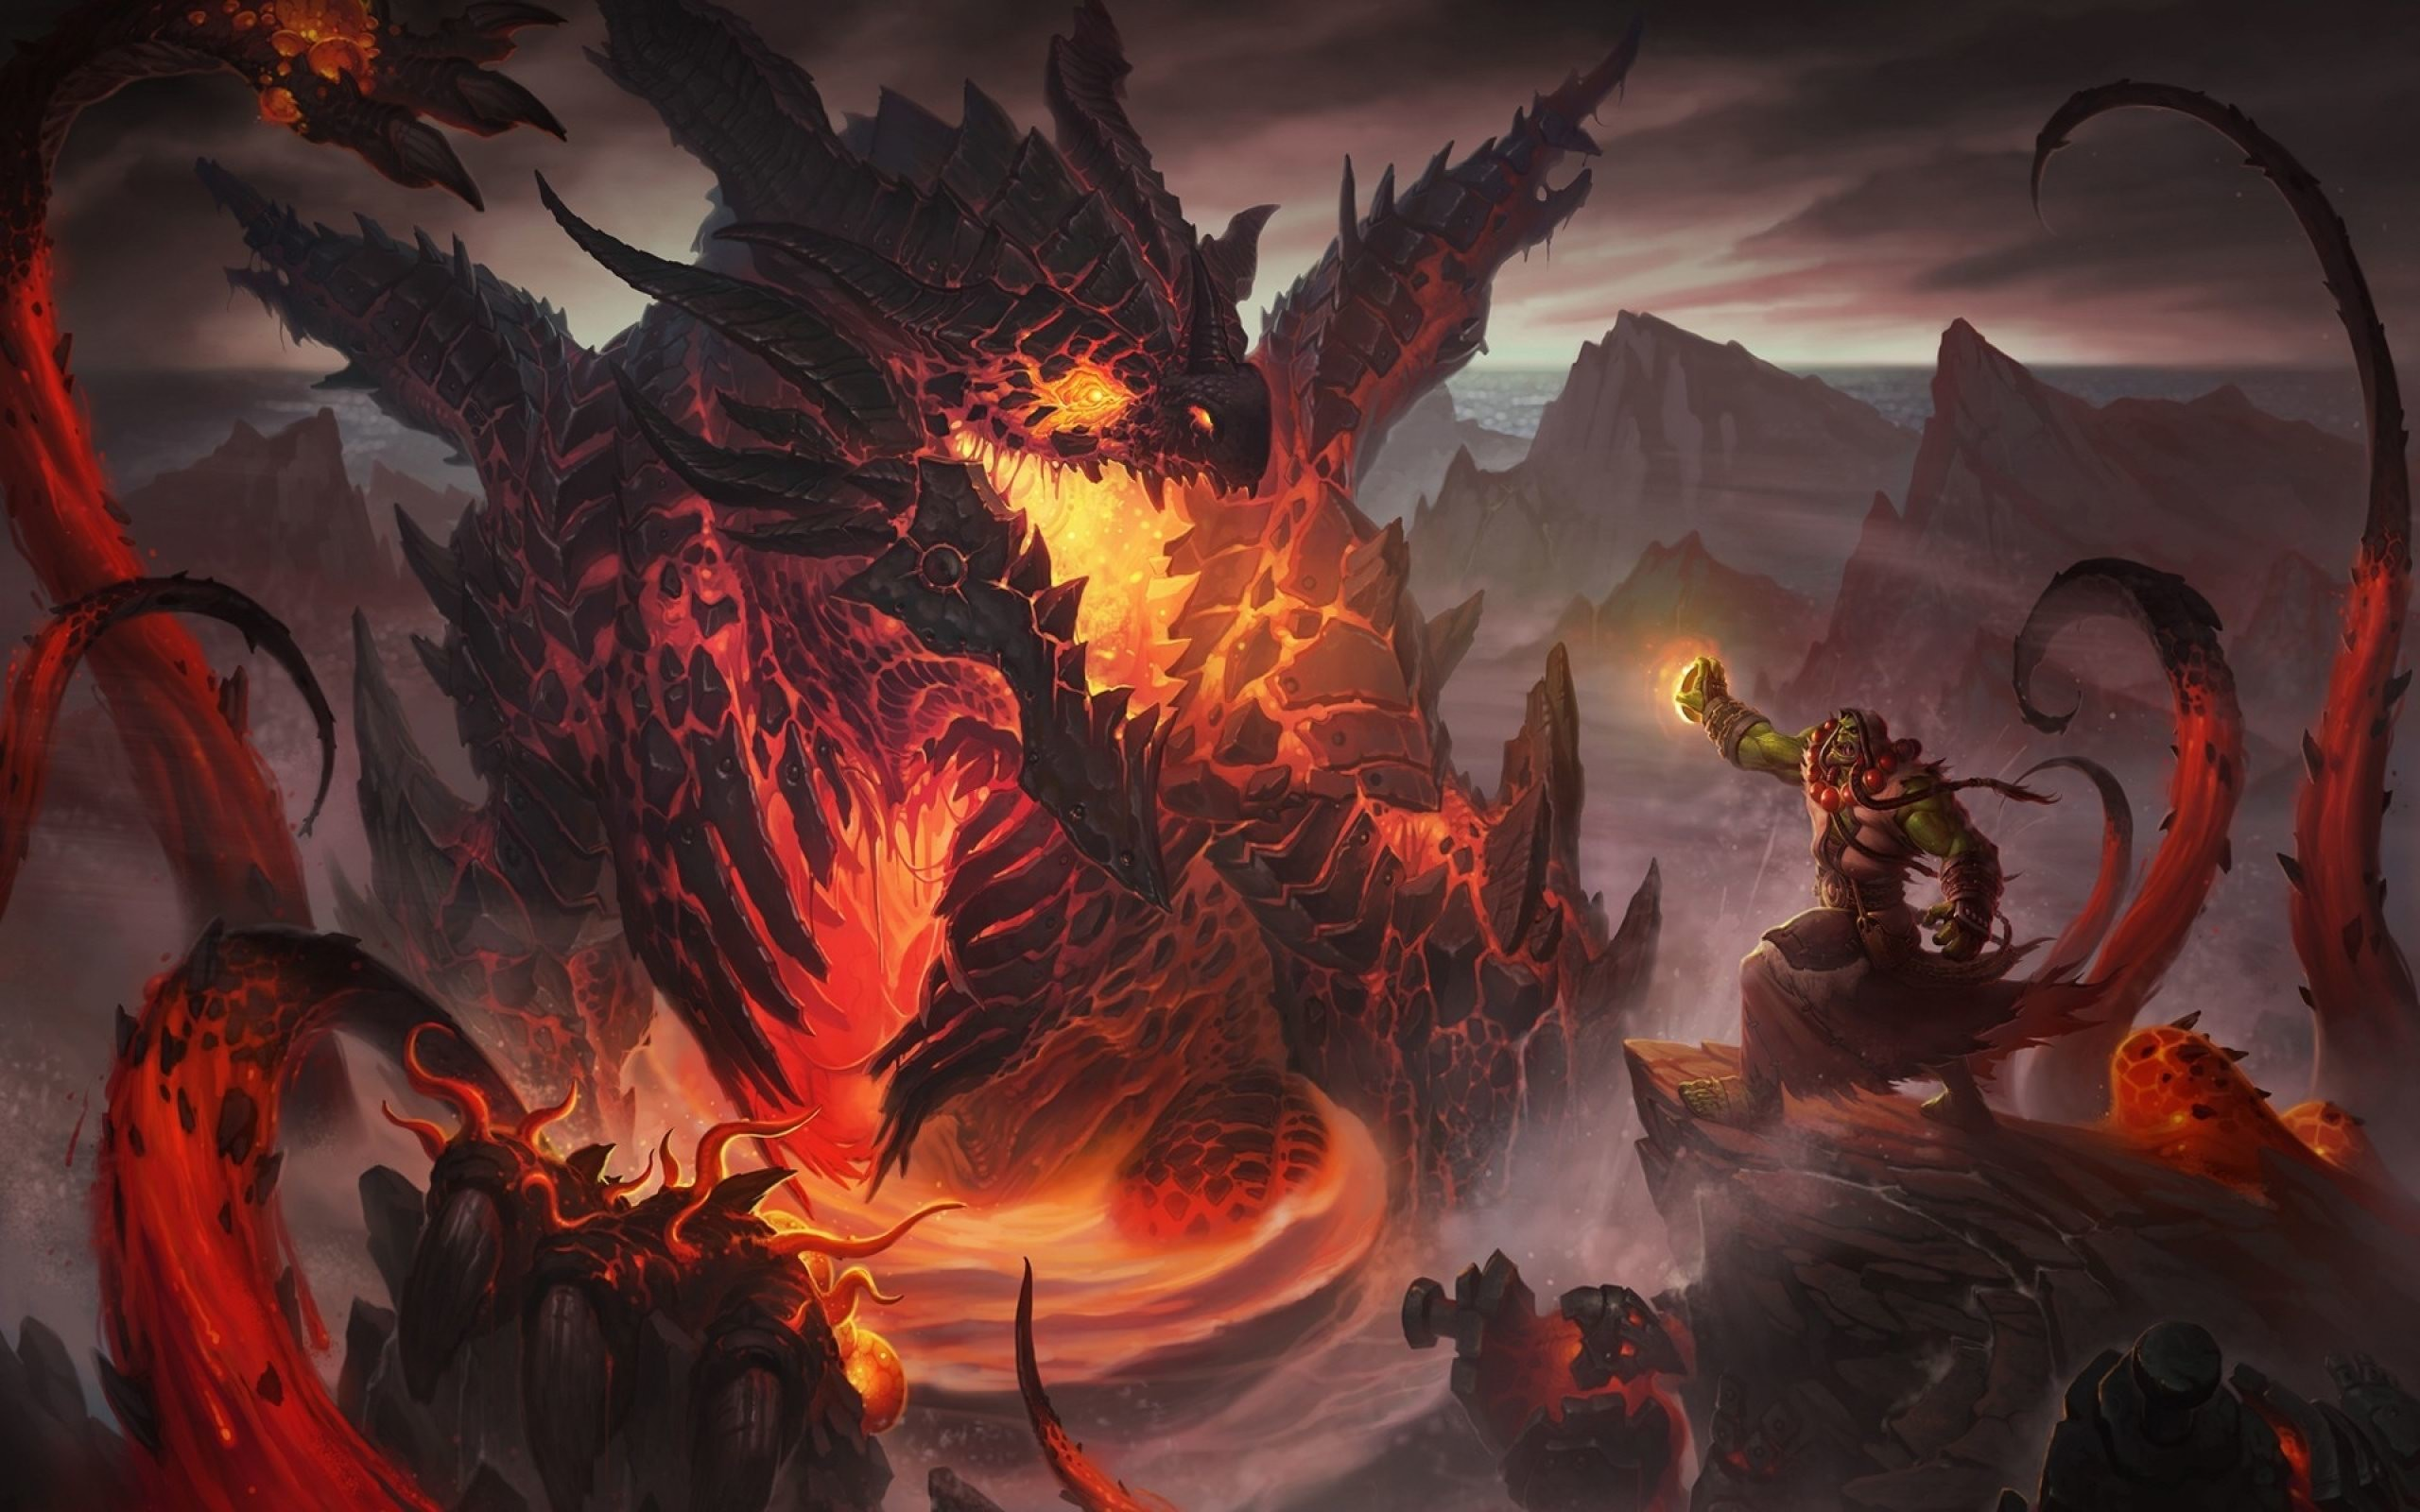 World of Warcraft cataclysm dragons orc thrall wallpaper ( / Wallbase.